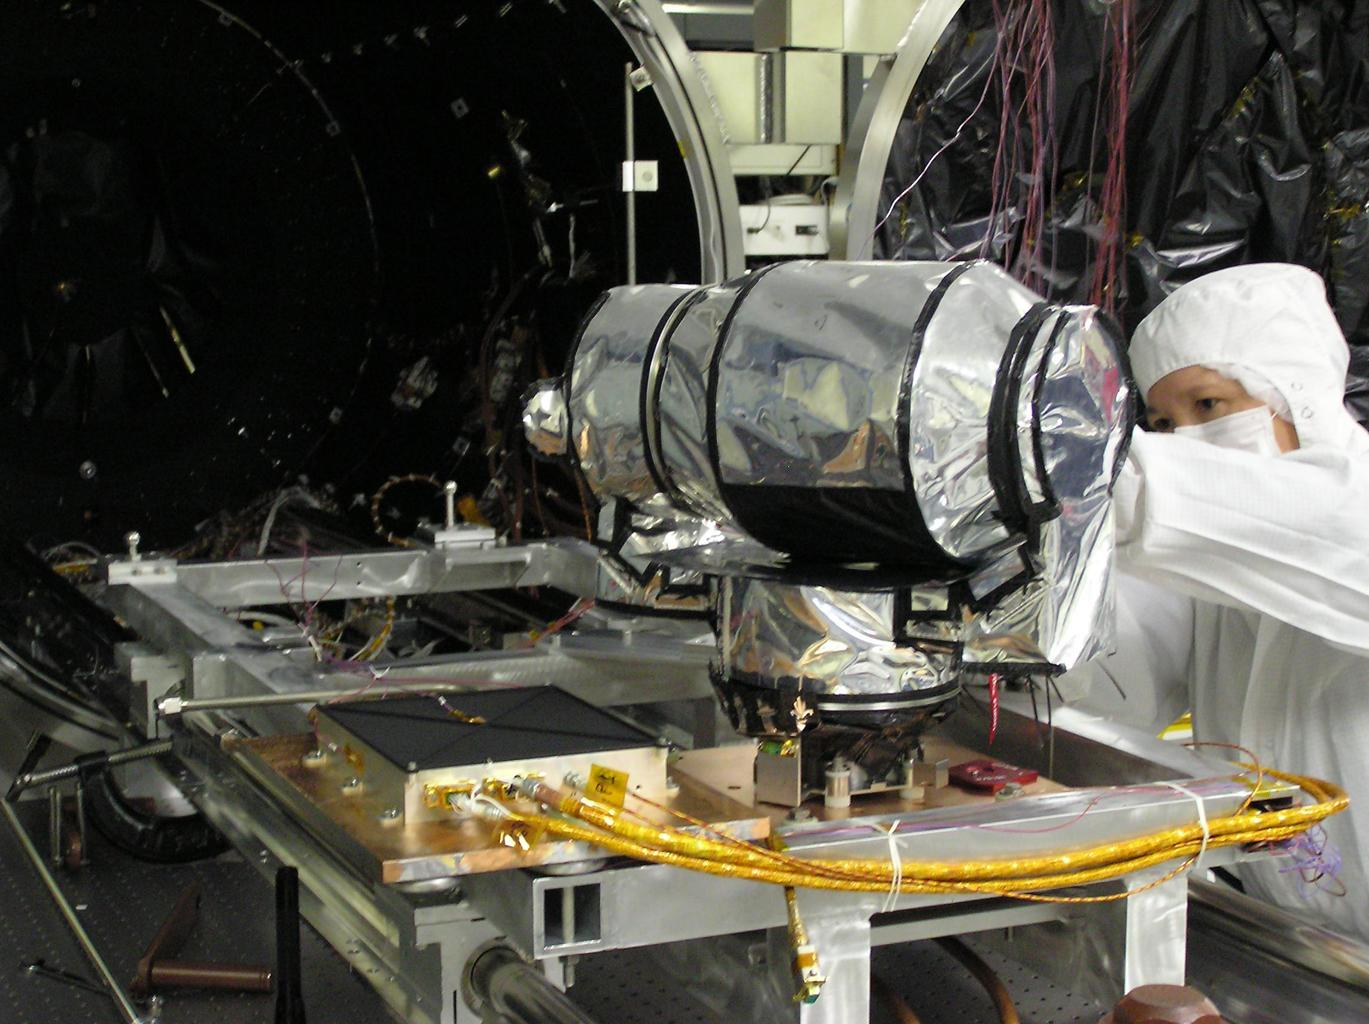 This image shows final preparations being made for thermal balance testing of the Diviner Lunar Radiometer Experiment at JPL. Diviner is one of seven instruments aboard NASA's LRO Mission.